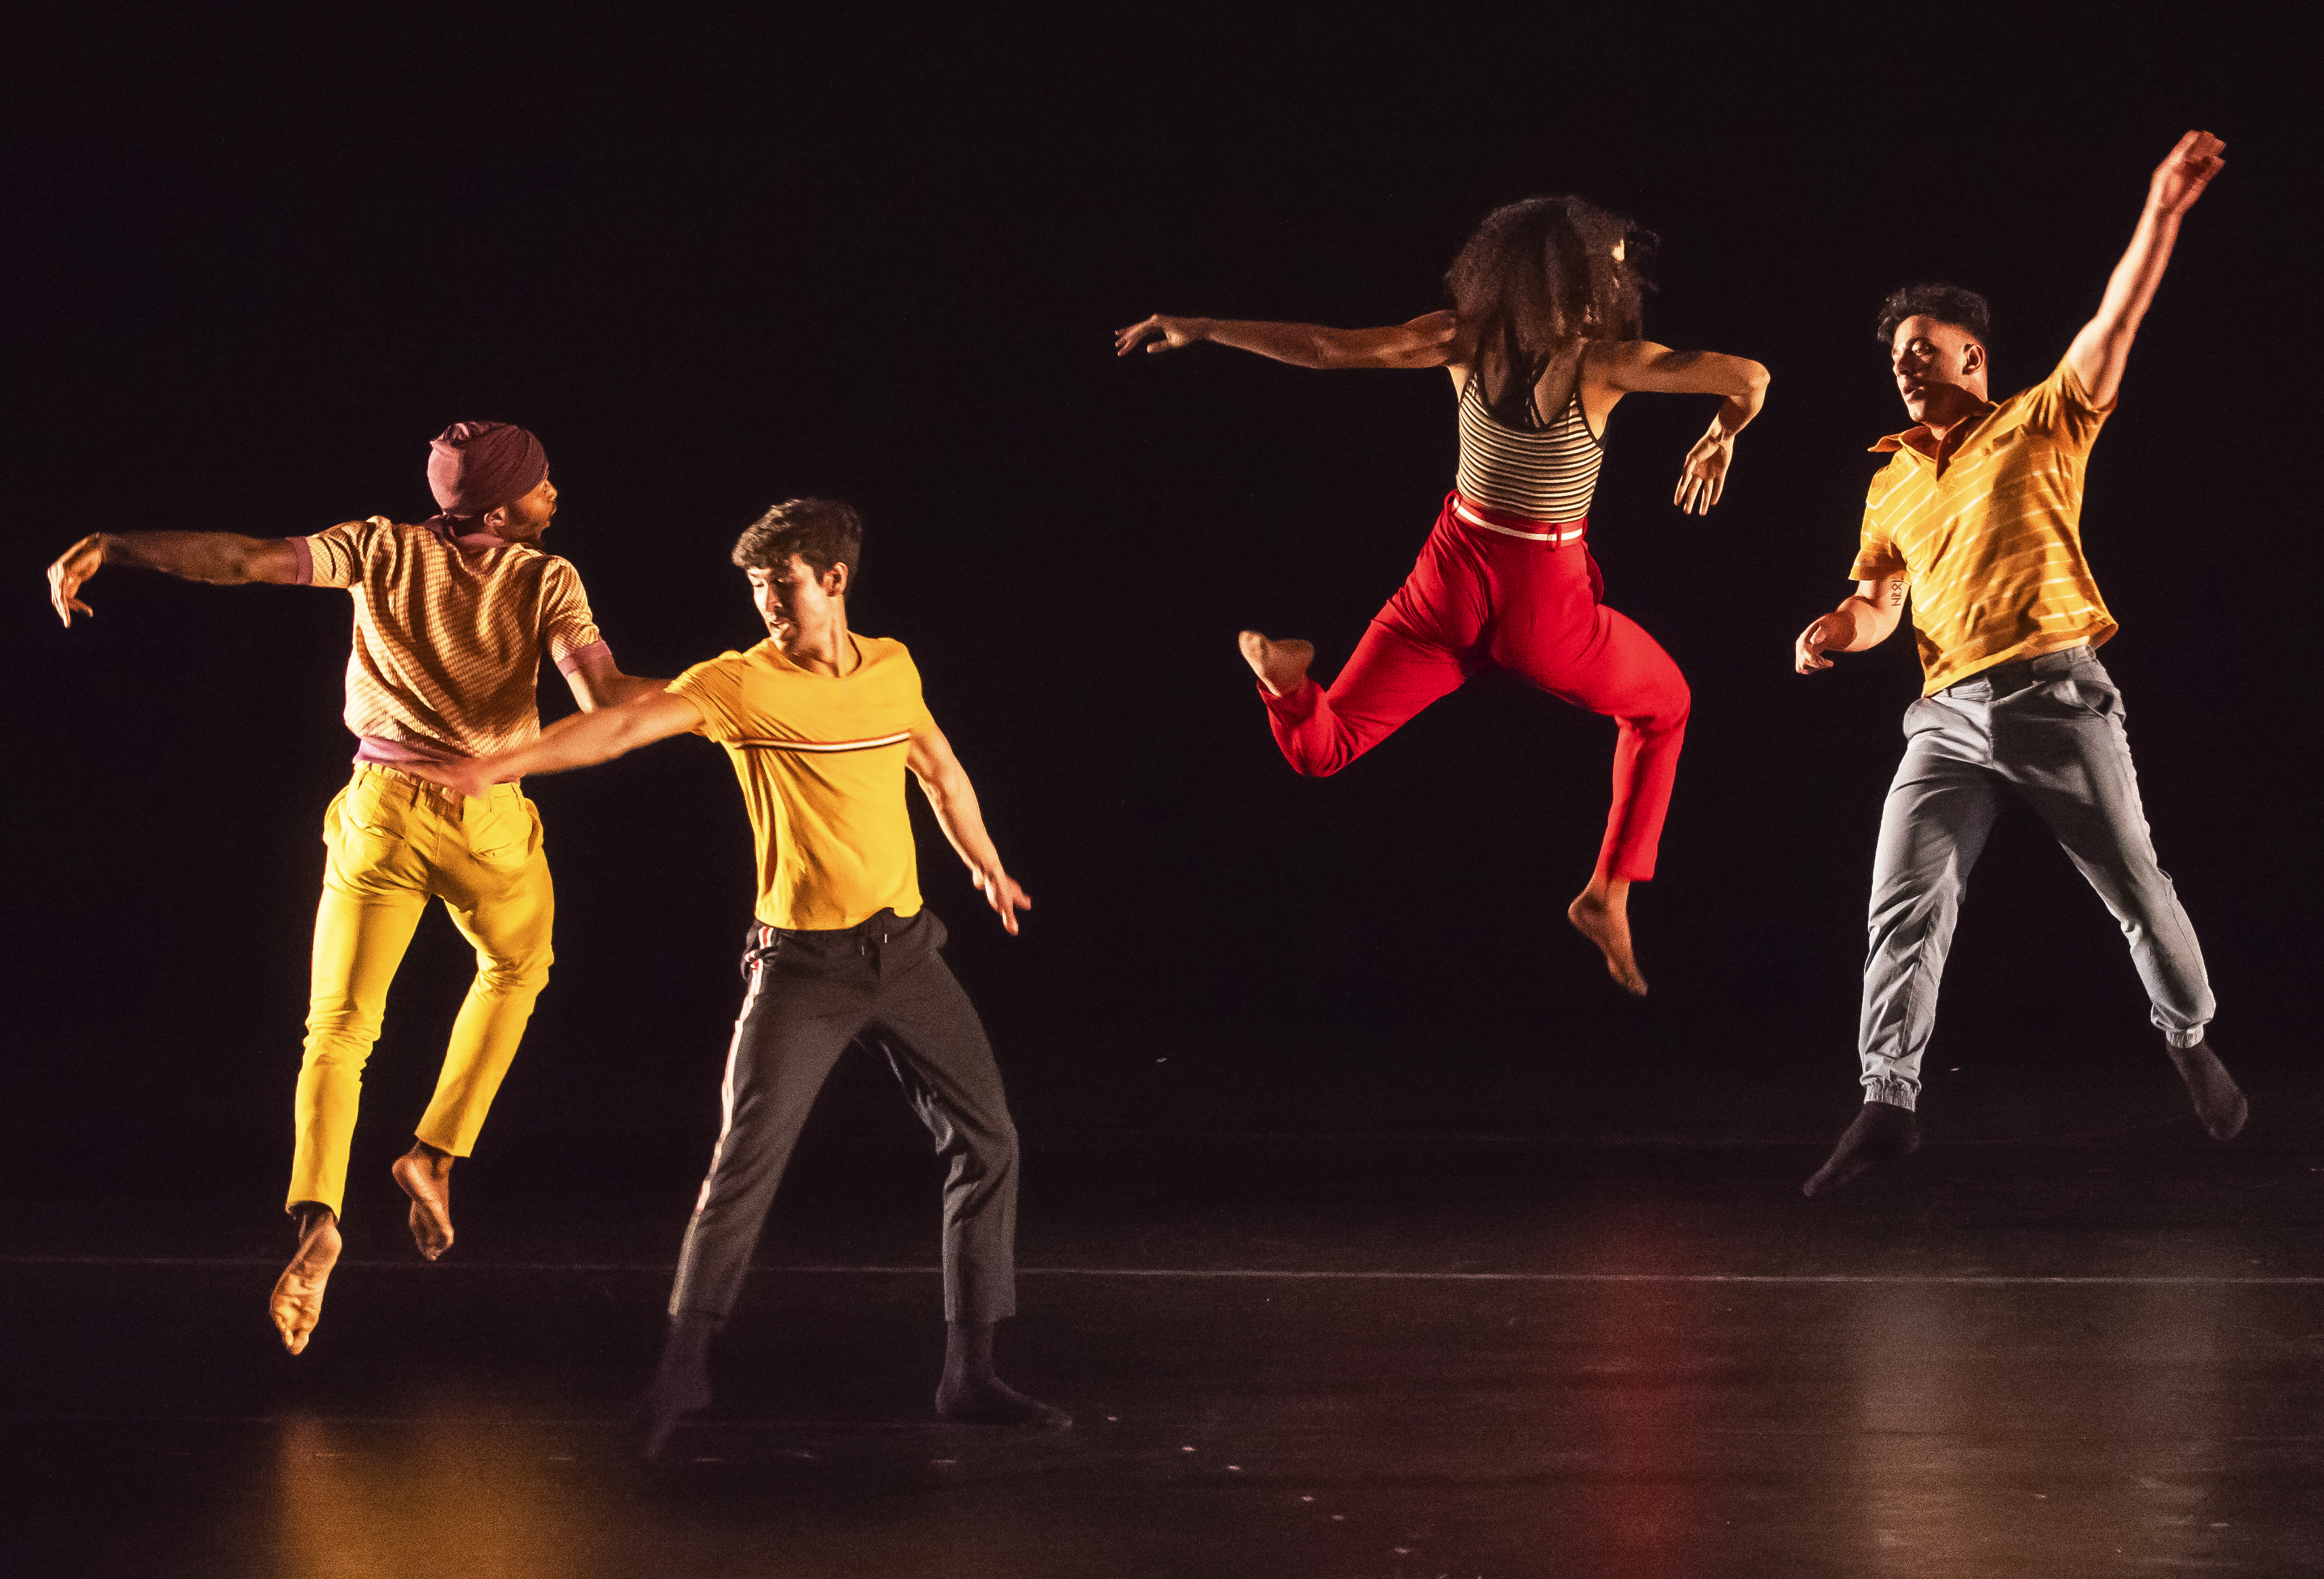 """Julia Rhoads """"Rink Life"""" blends dance, dialogue, storytelling and music along with the visual aesthetics of 1970s roller rink culture."""